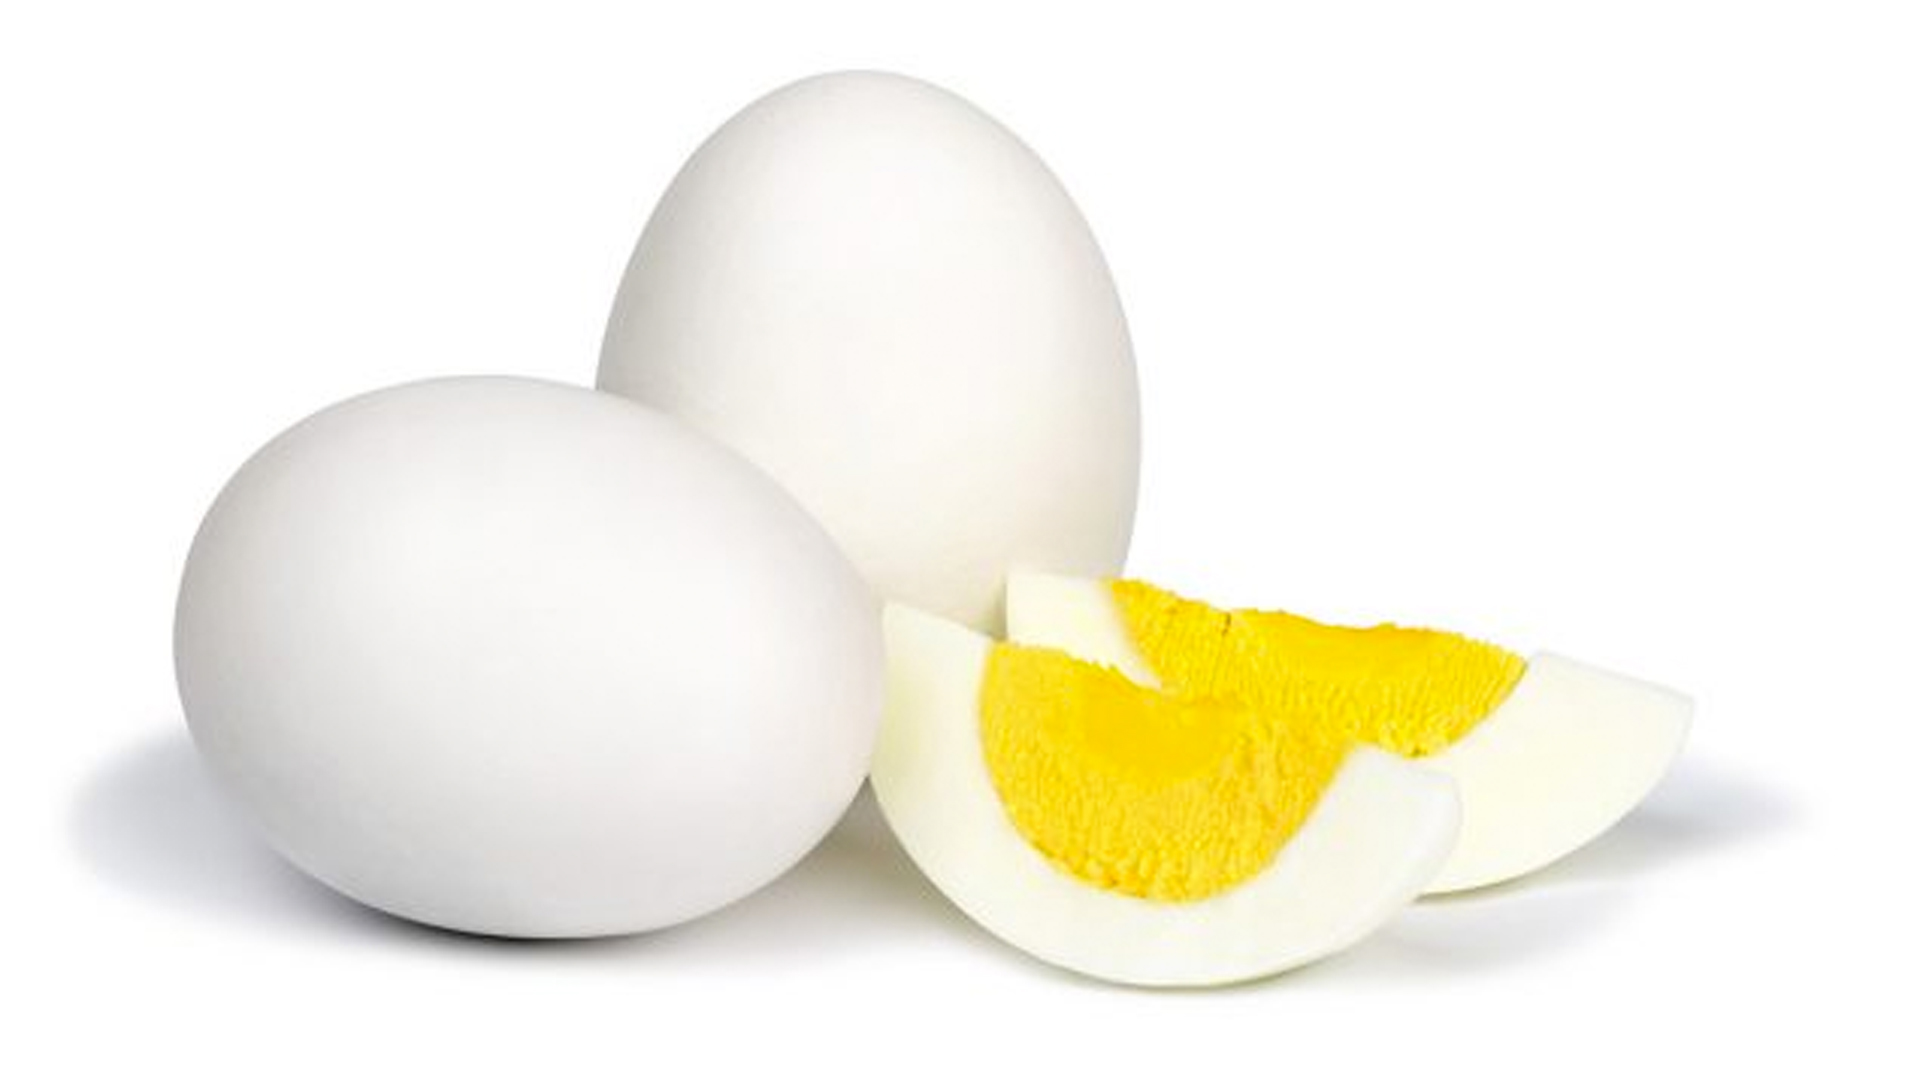 Hard-boiled eggs are seen in an image taken from the Centers for Disease Control and Prevention website on Dec. 19, 2019.